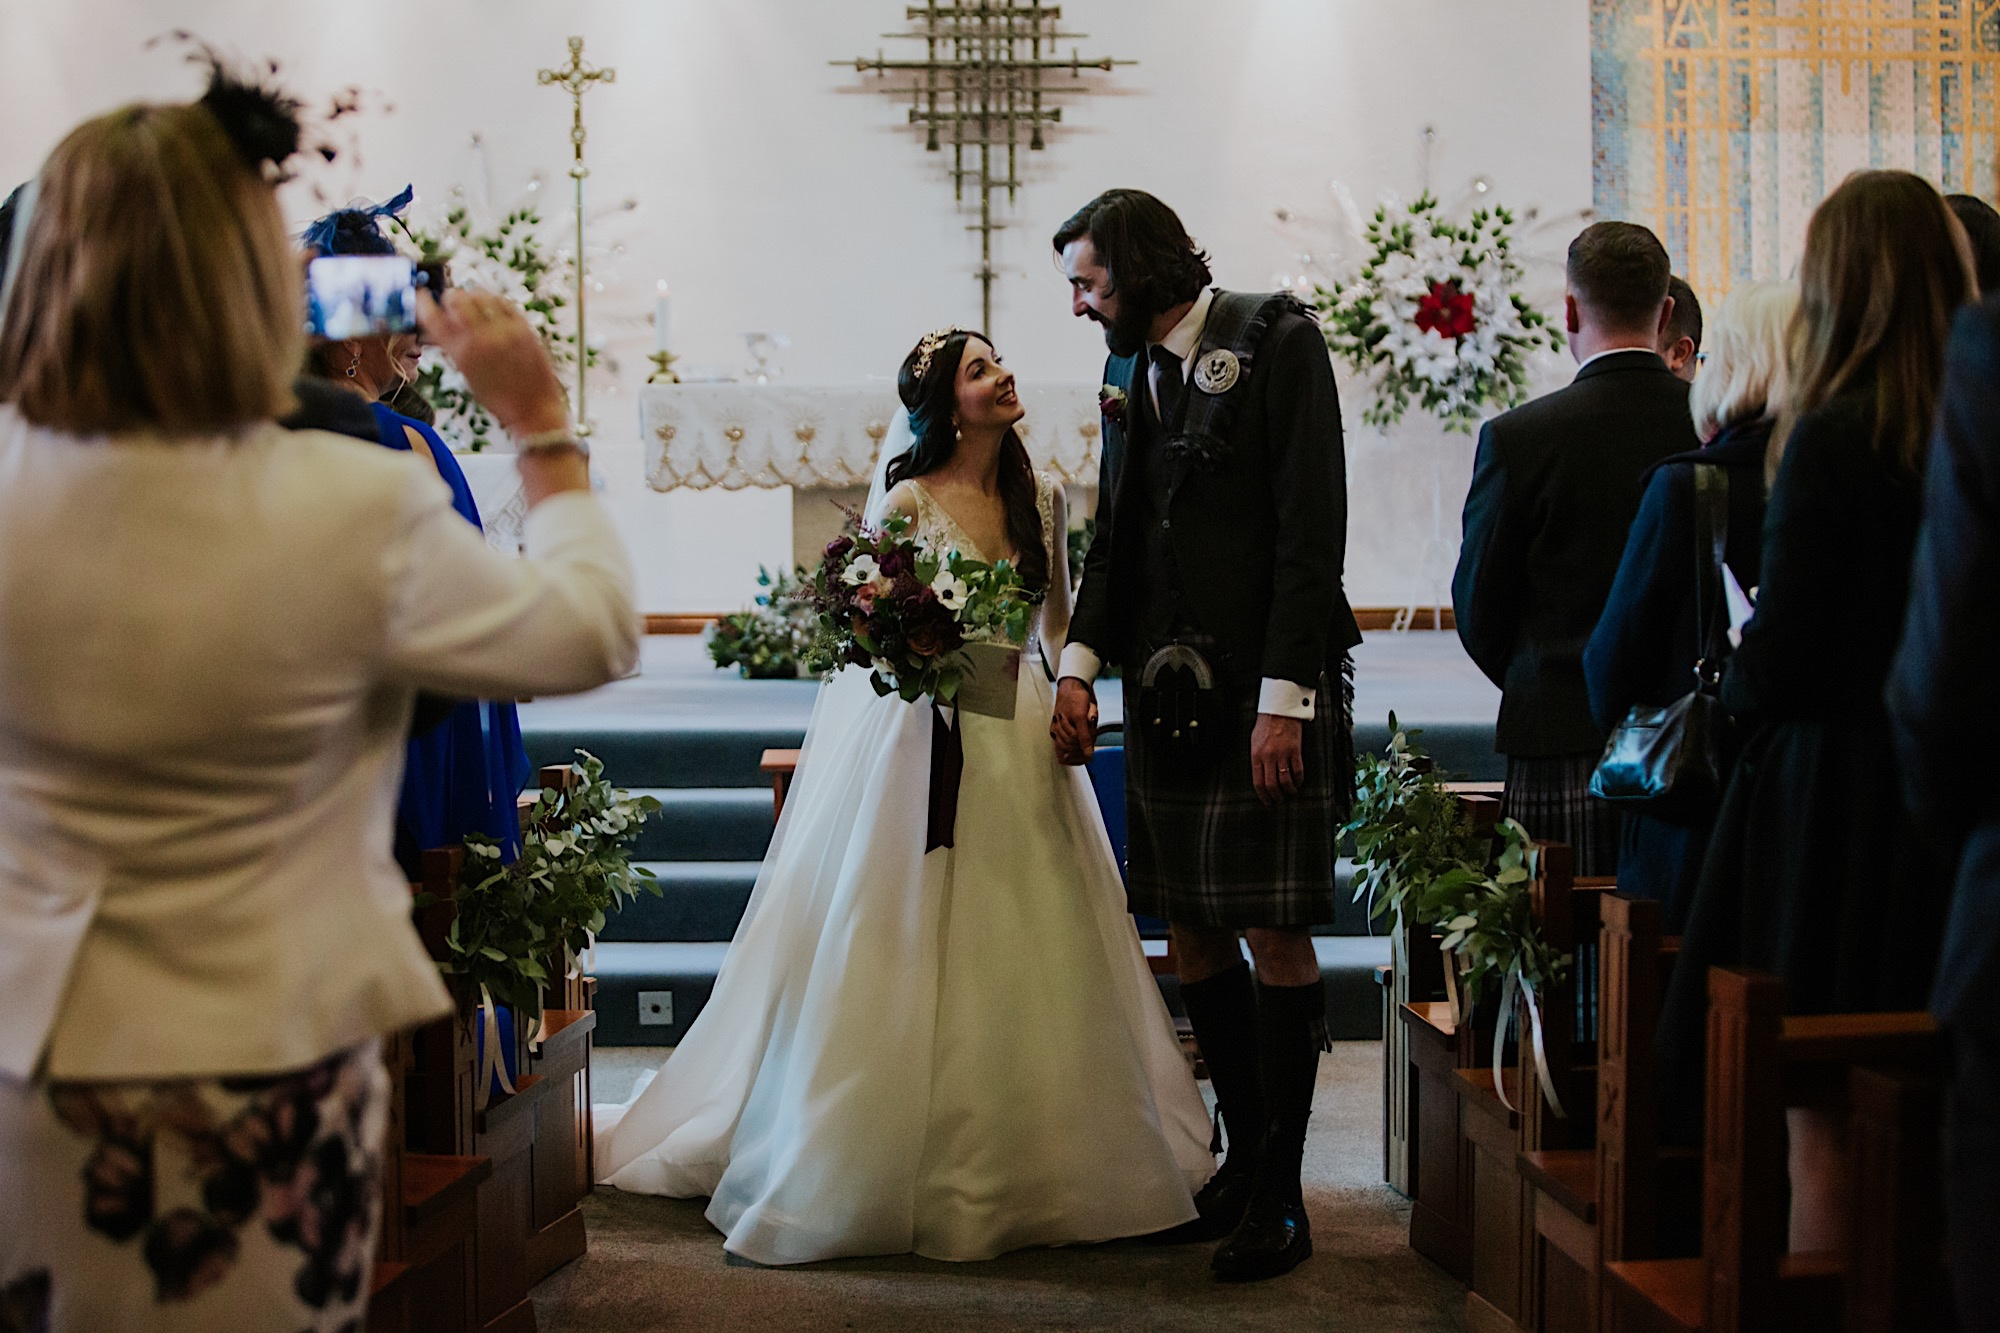 bride and groom walking out of ceremony looking at each other with smiles